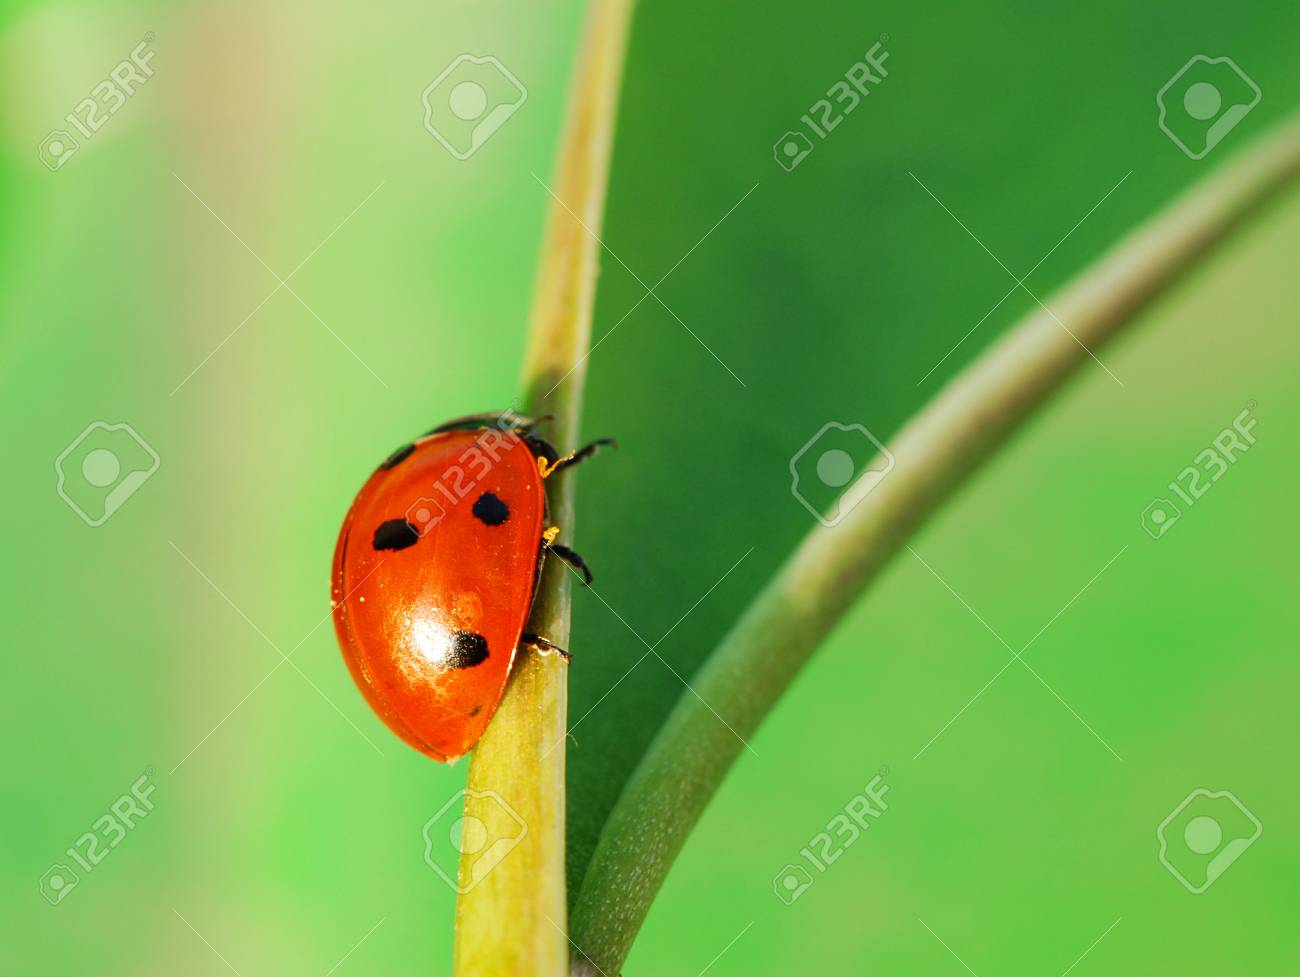 Small ladybird bug is on is way across a green leaf Stock Photo - 4804628